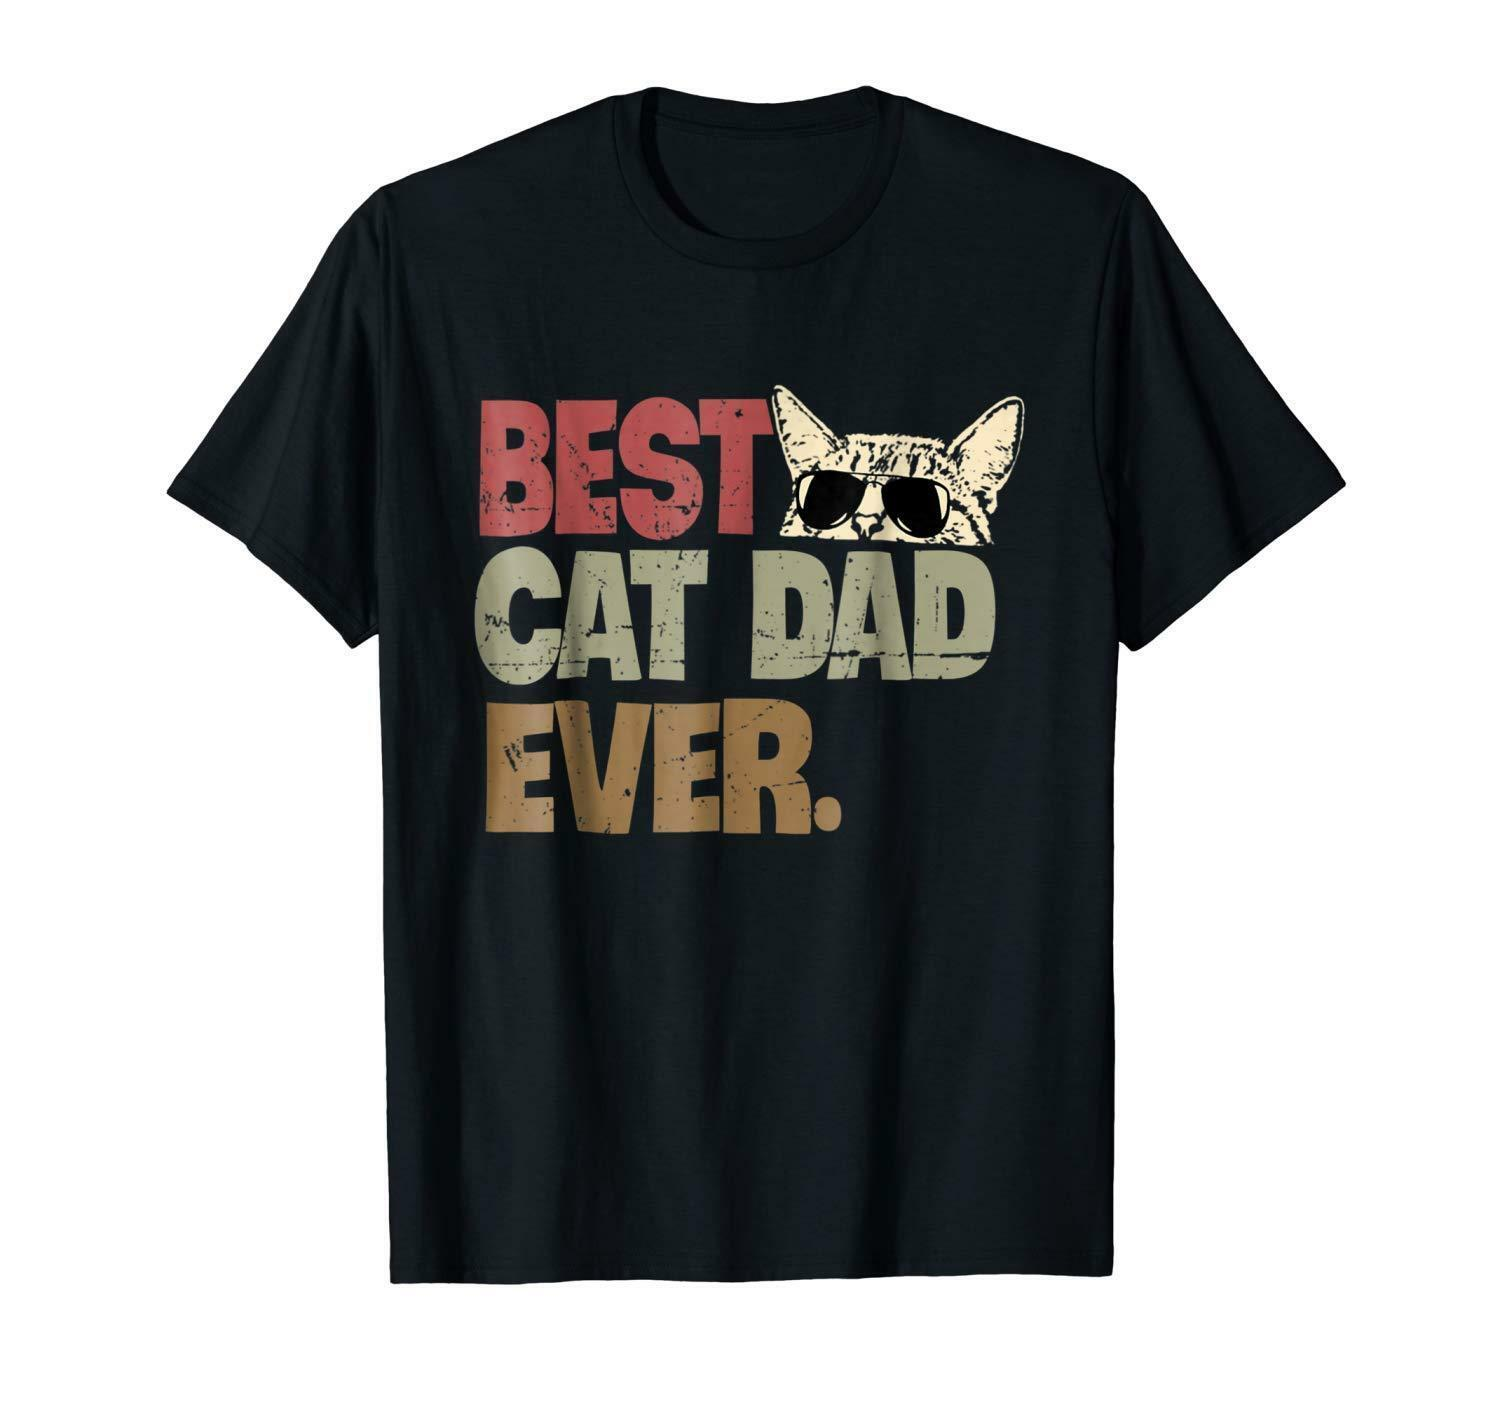 b03402a8 Best Cat Dad Ever T-Shirt Cat Daddy Gift Shirts Men' Size S-3XL US Free  Shipping Brand shirts jeans Print